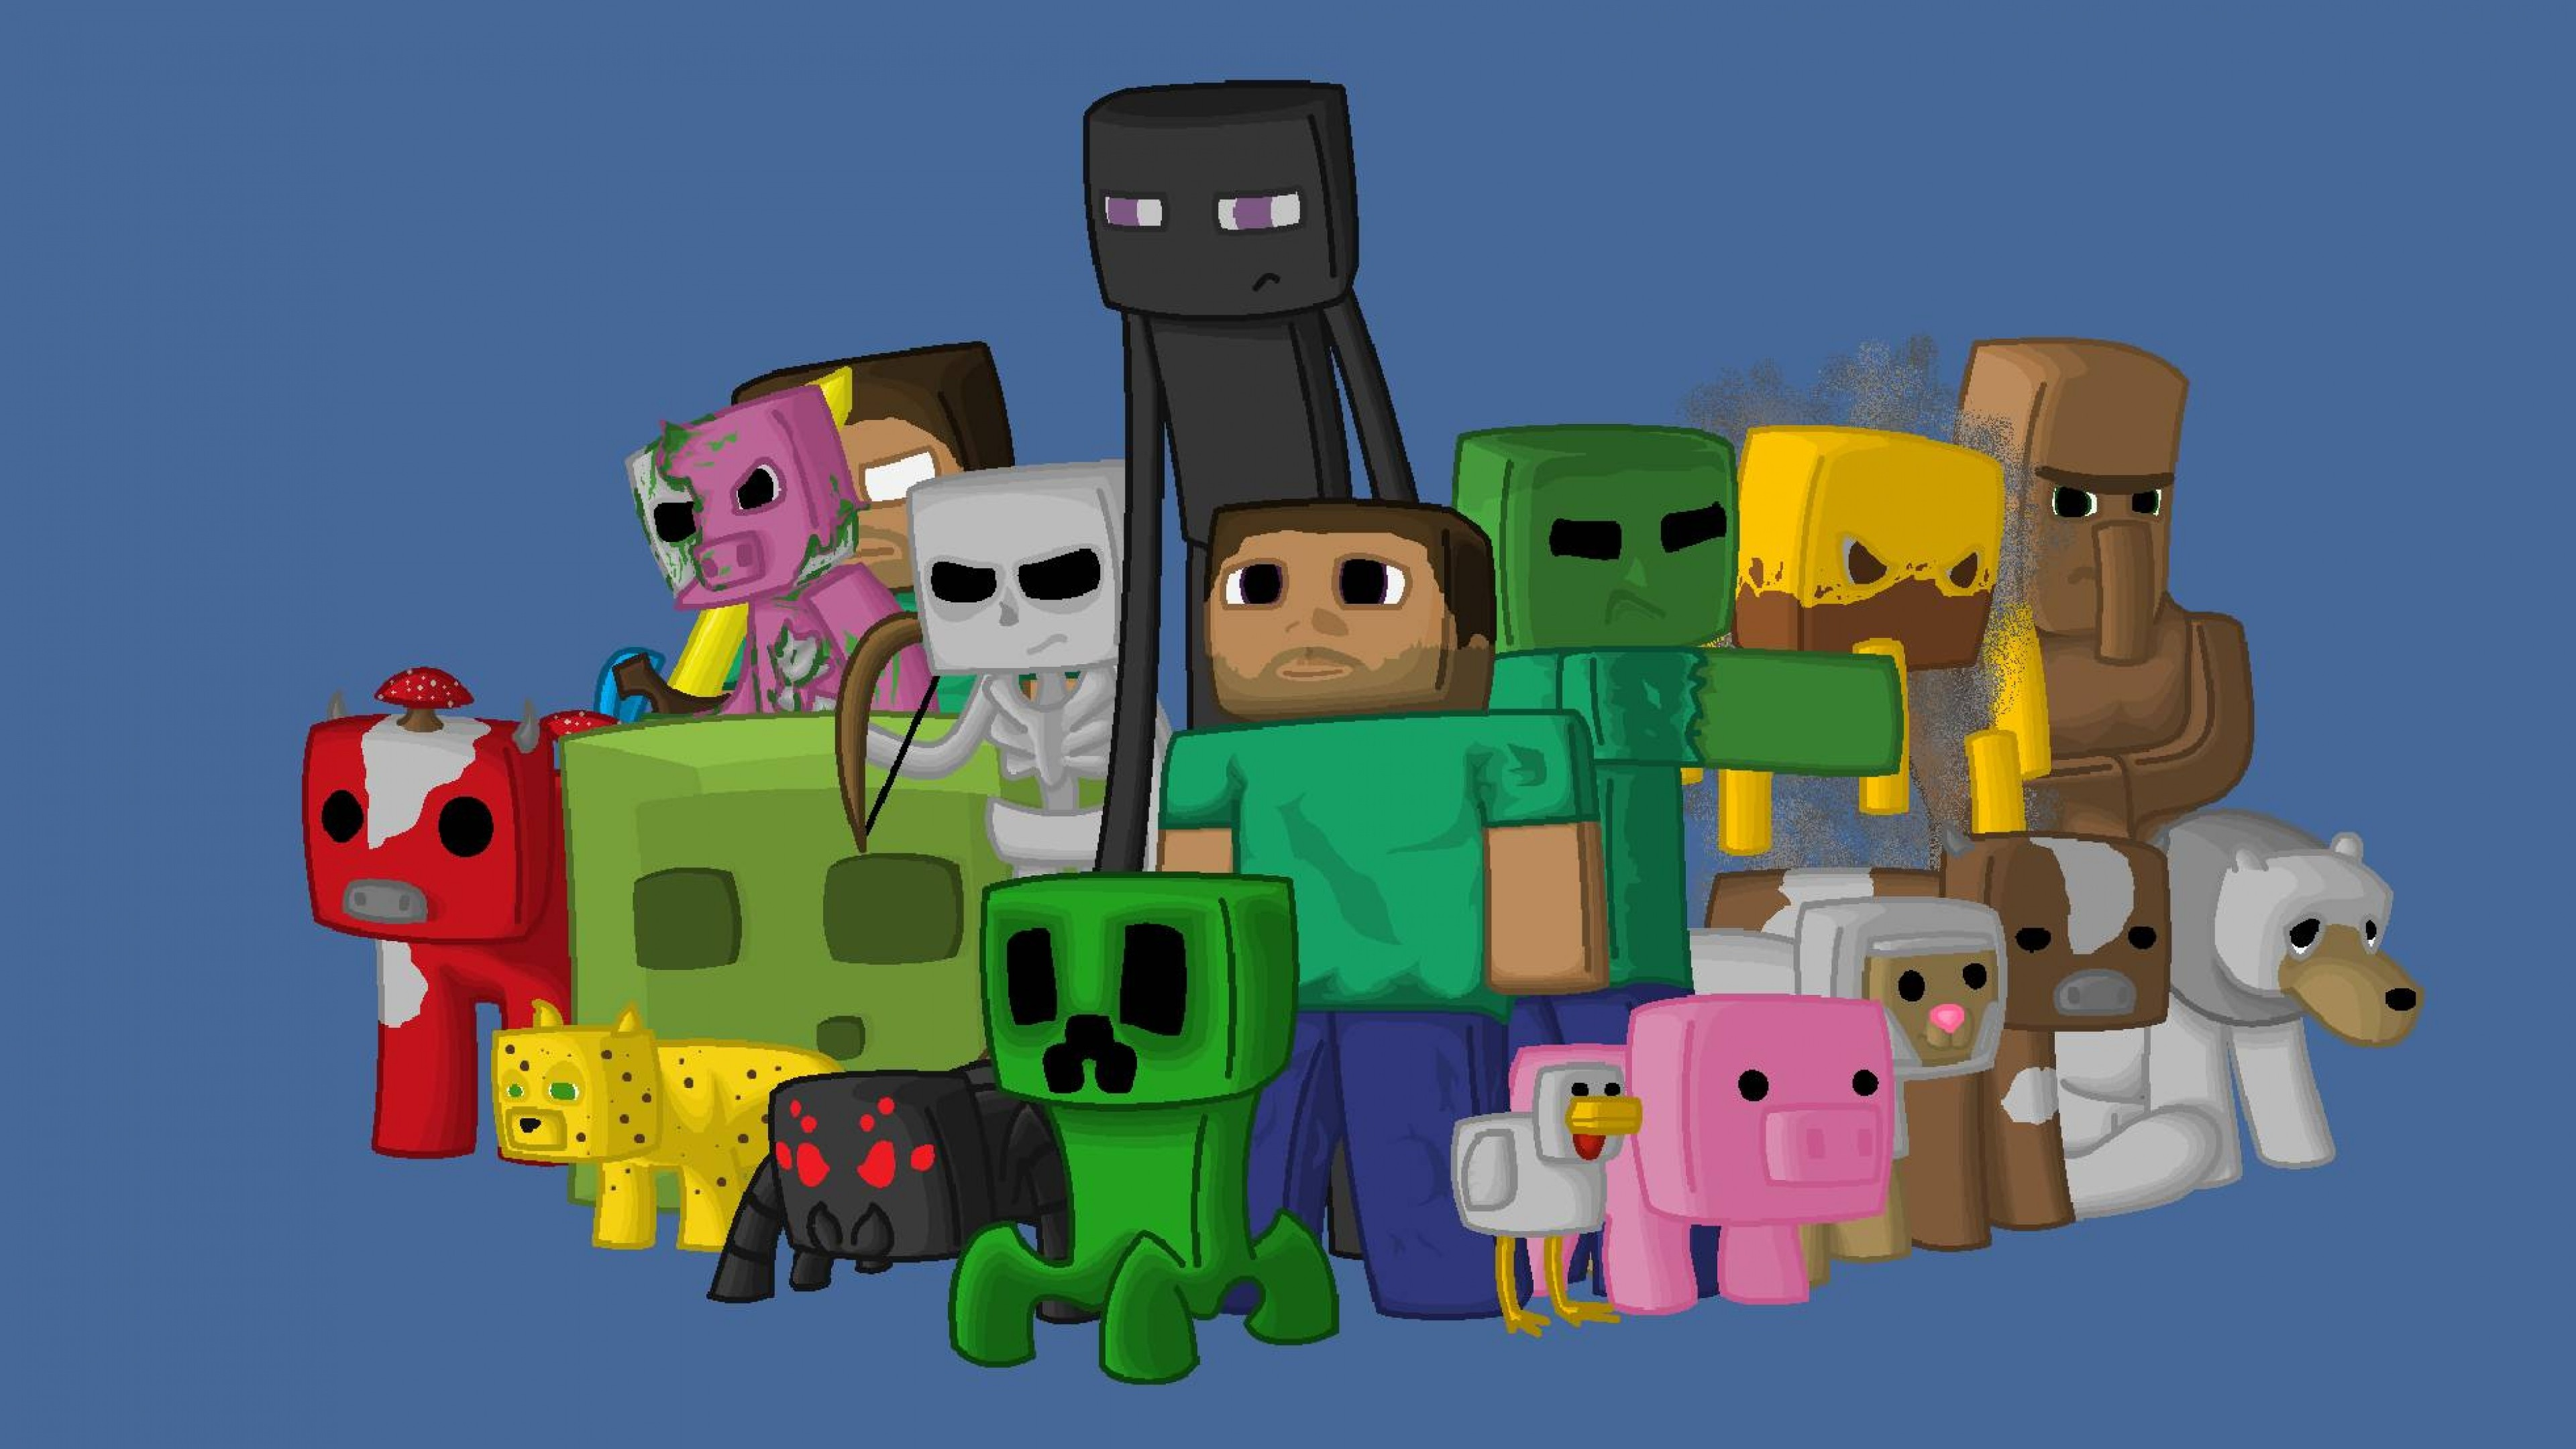 3840x2160 Preview wallpaper minecraft, characters, game, pixels, java